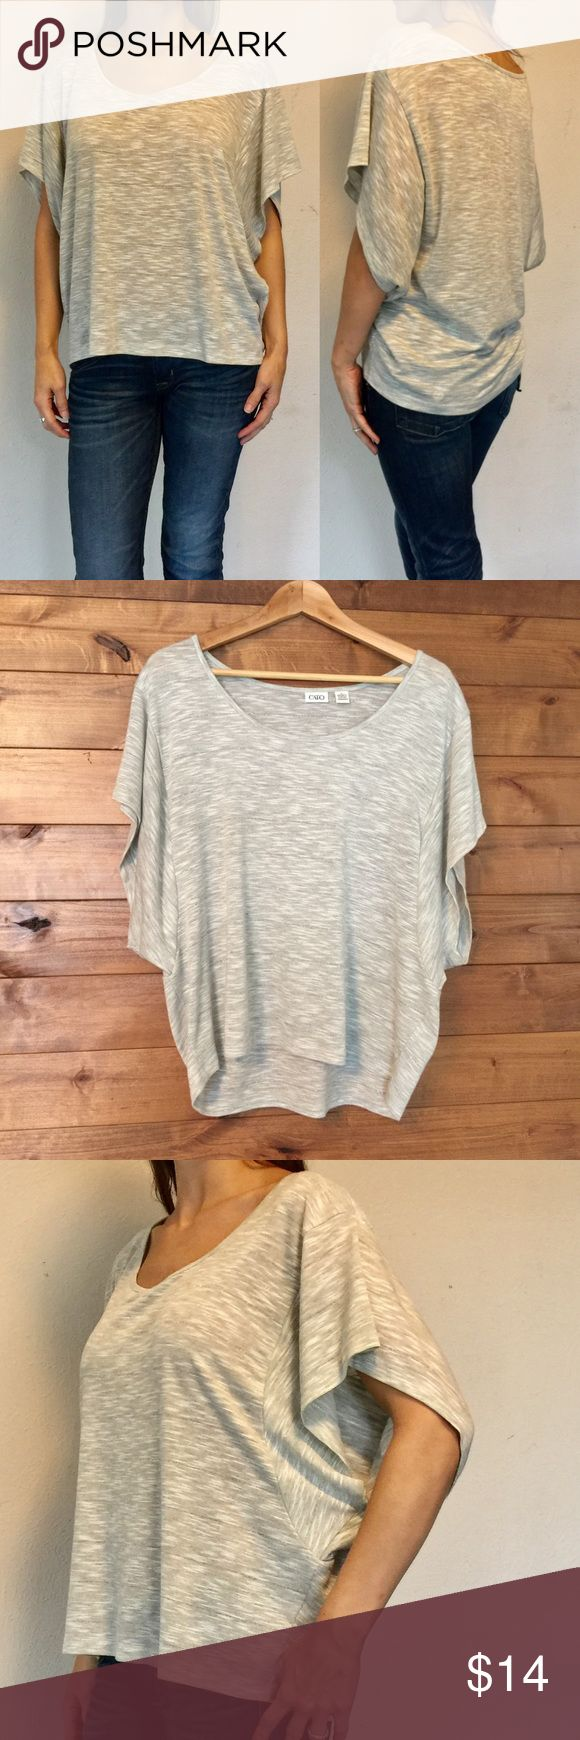 "Cato Slouchy Batwing Top sz M-L Heather Gray Batwing Sleeve Slub Knit Tee with high low Hem. Hint of metallic in fabric. Size large but fits like a medium therefore listed as such. Excellent condition. Great fit. Length: 24"" - 26"" Bust: 19"" Cato Tops"